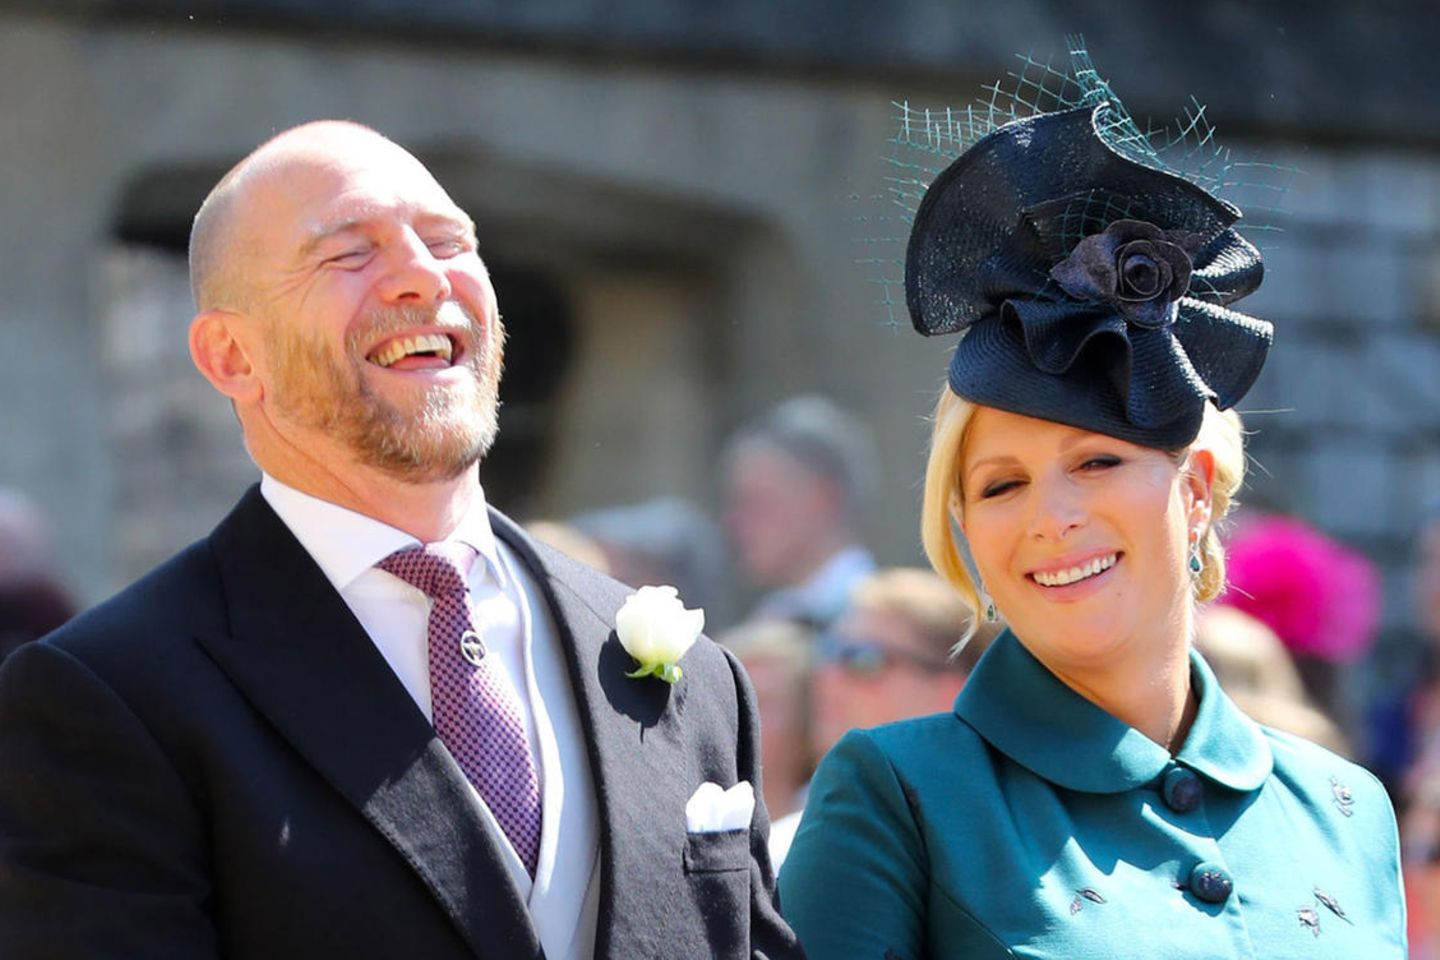 Mike + Zara Tindall